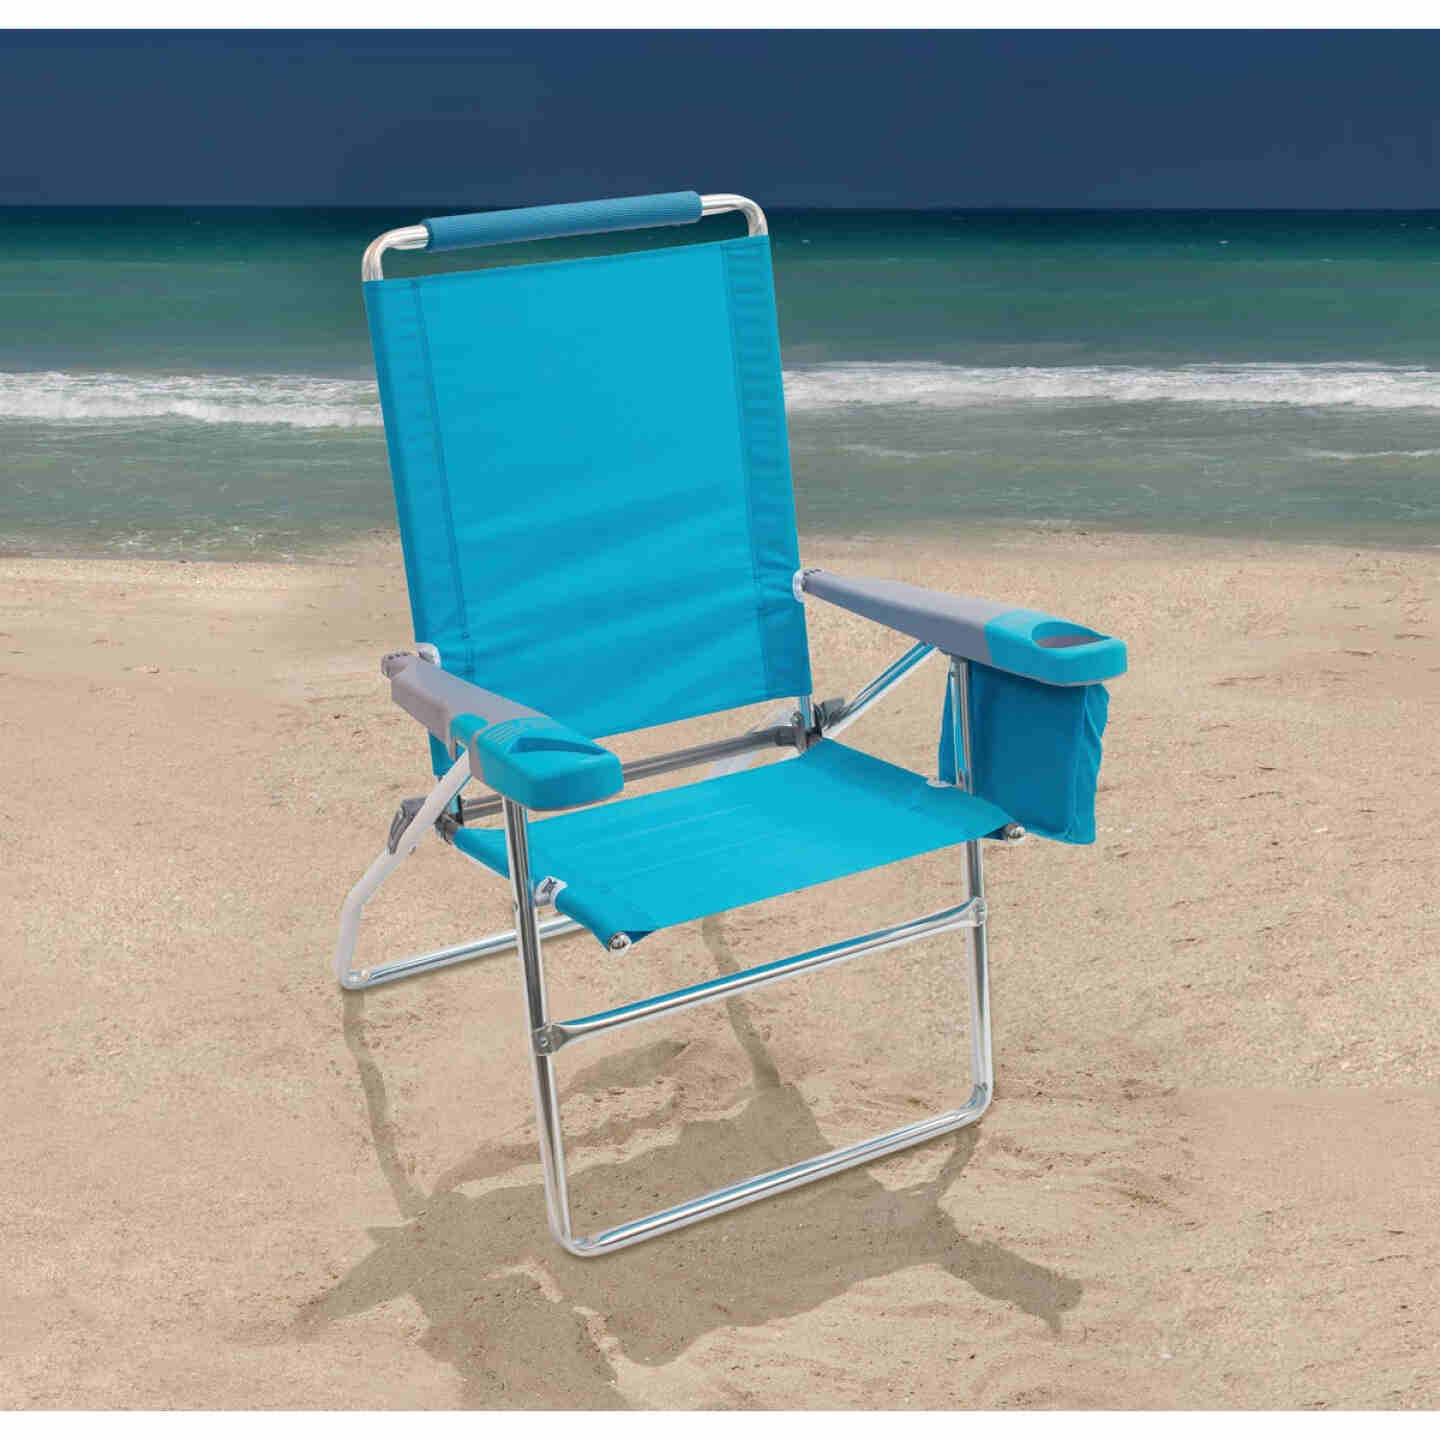 Rio Brands 4-Position Aluminum Folding Beach Chair with Cooler Image 3